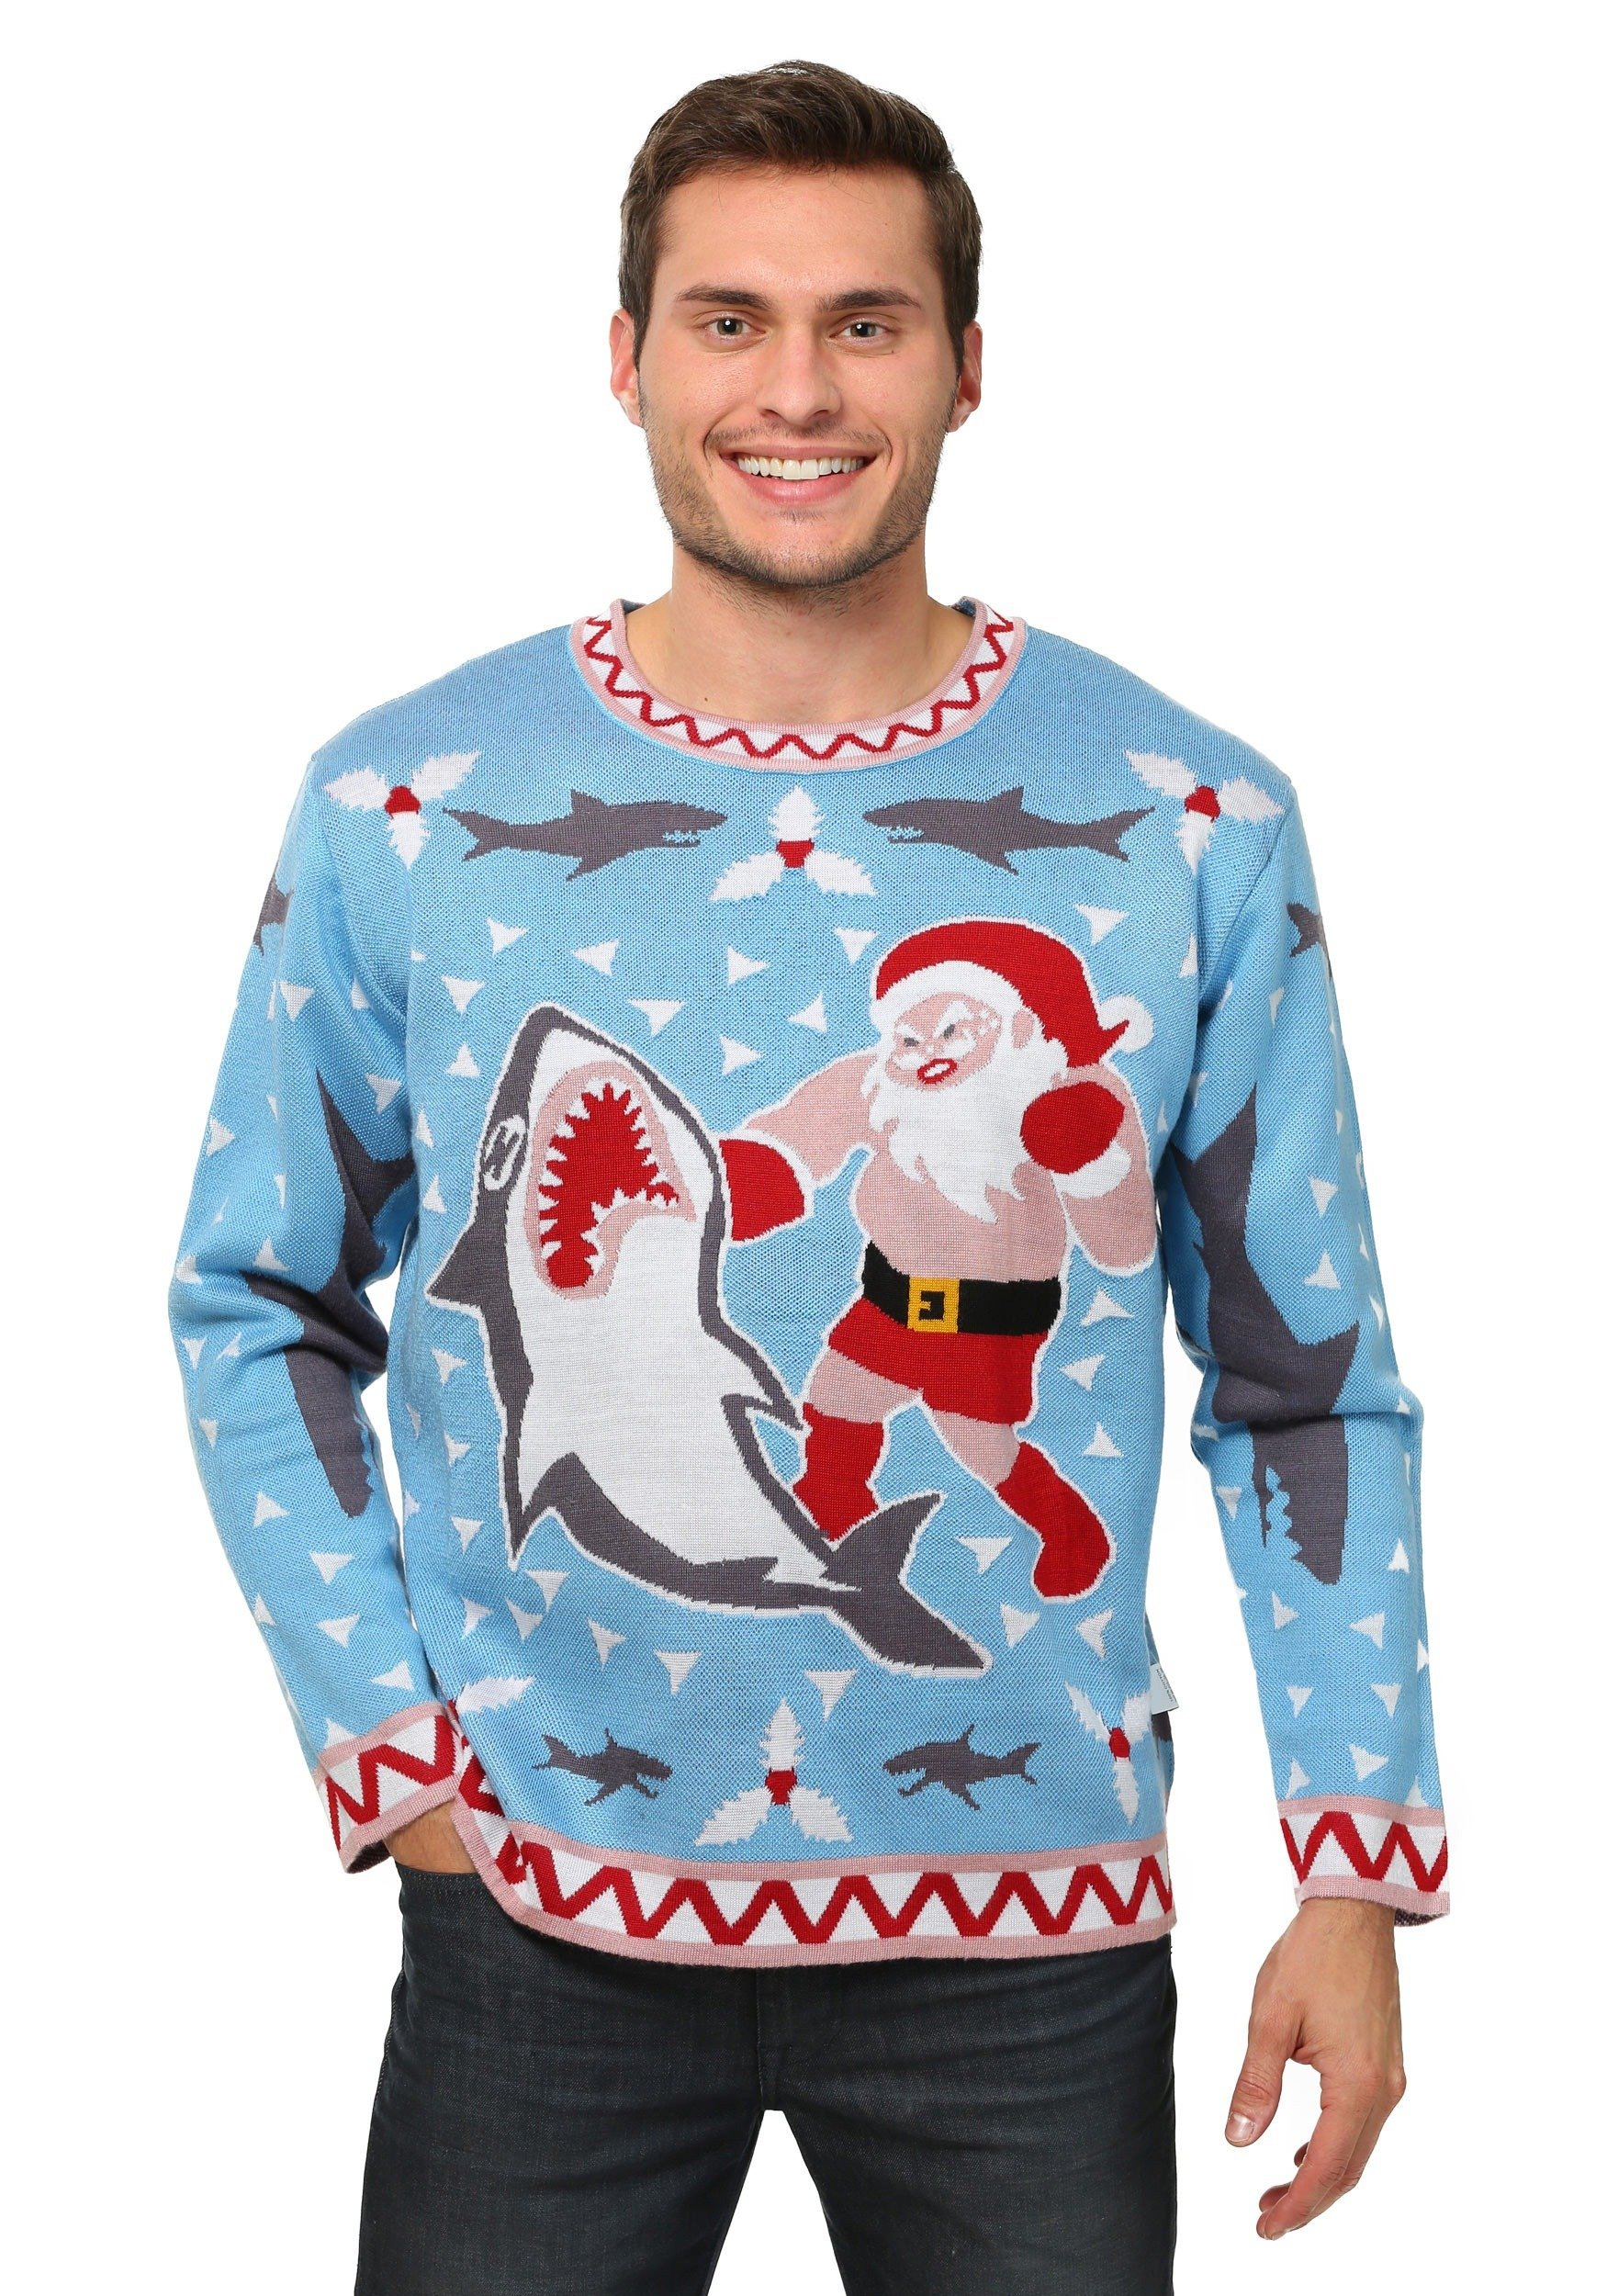 Men's Santa vs Shark Ugly Christmas Sweater 3X by FunComInc